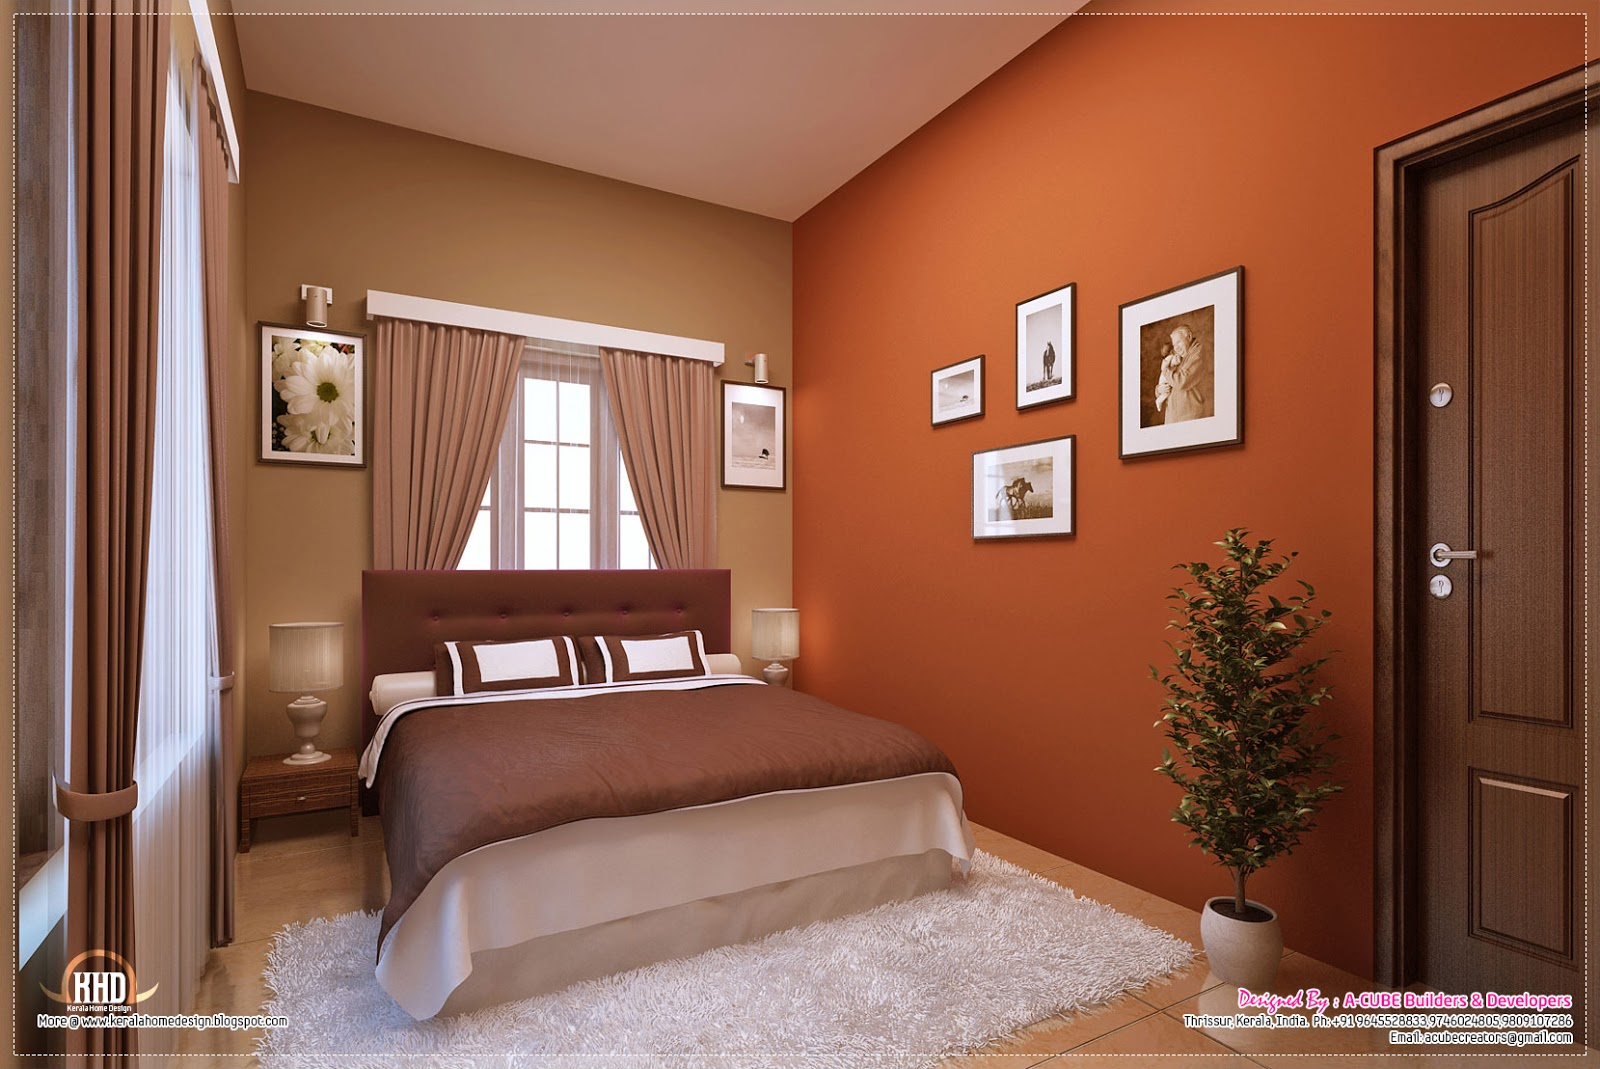 Awesome interior decoration ideas kerala home design and - Interior design for bedroom in india ...